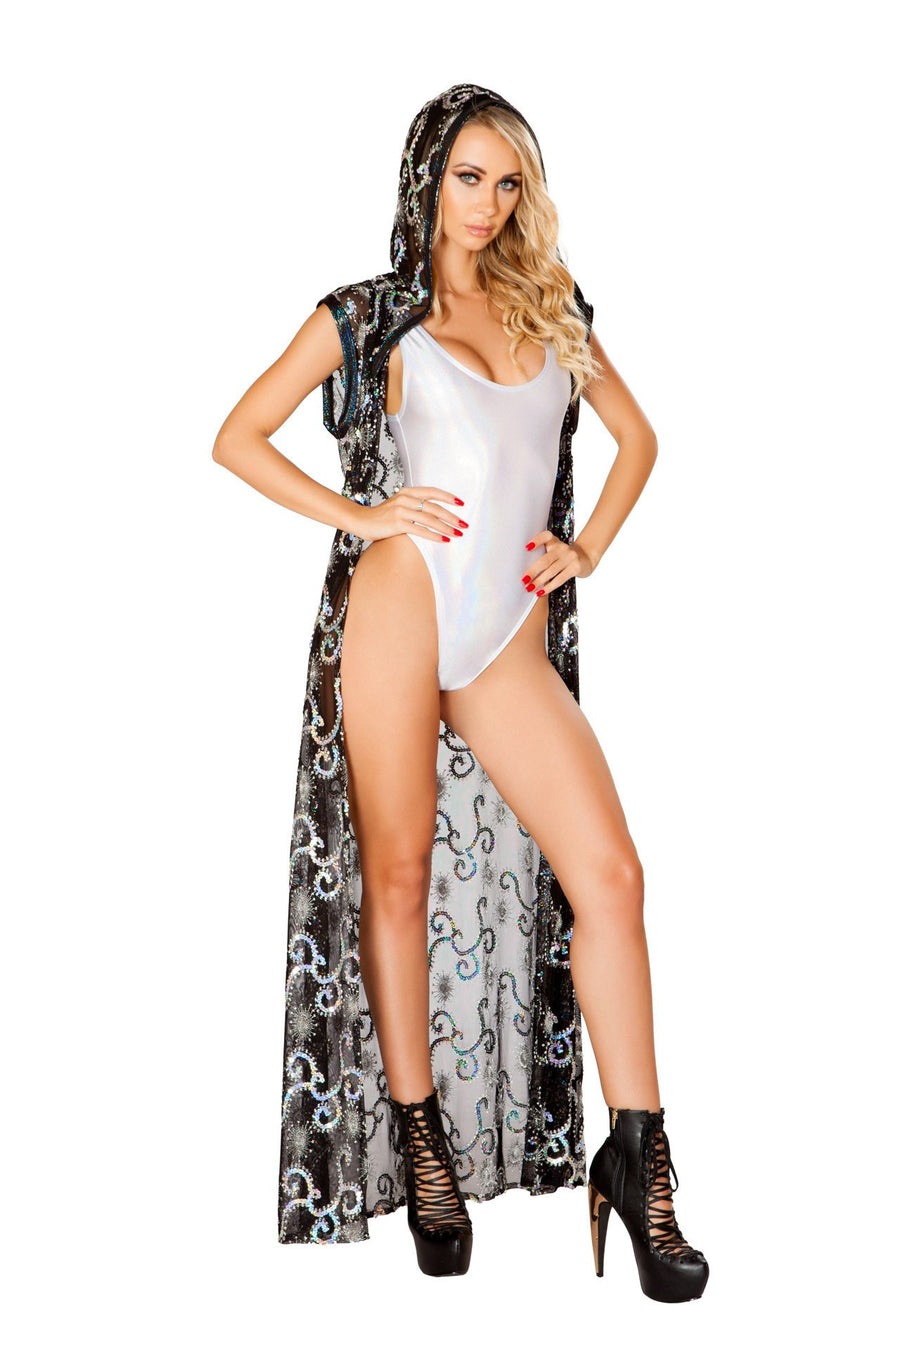 J-Valentine Sequin Mesh Long Duster - Sequin Long Duster, J-Valentine, YourLamode